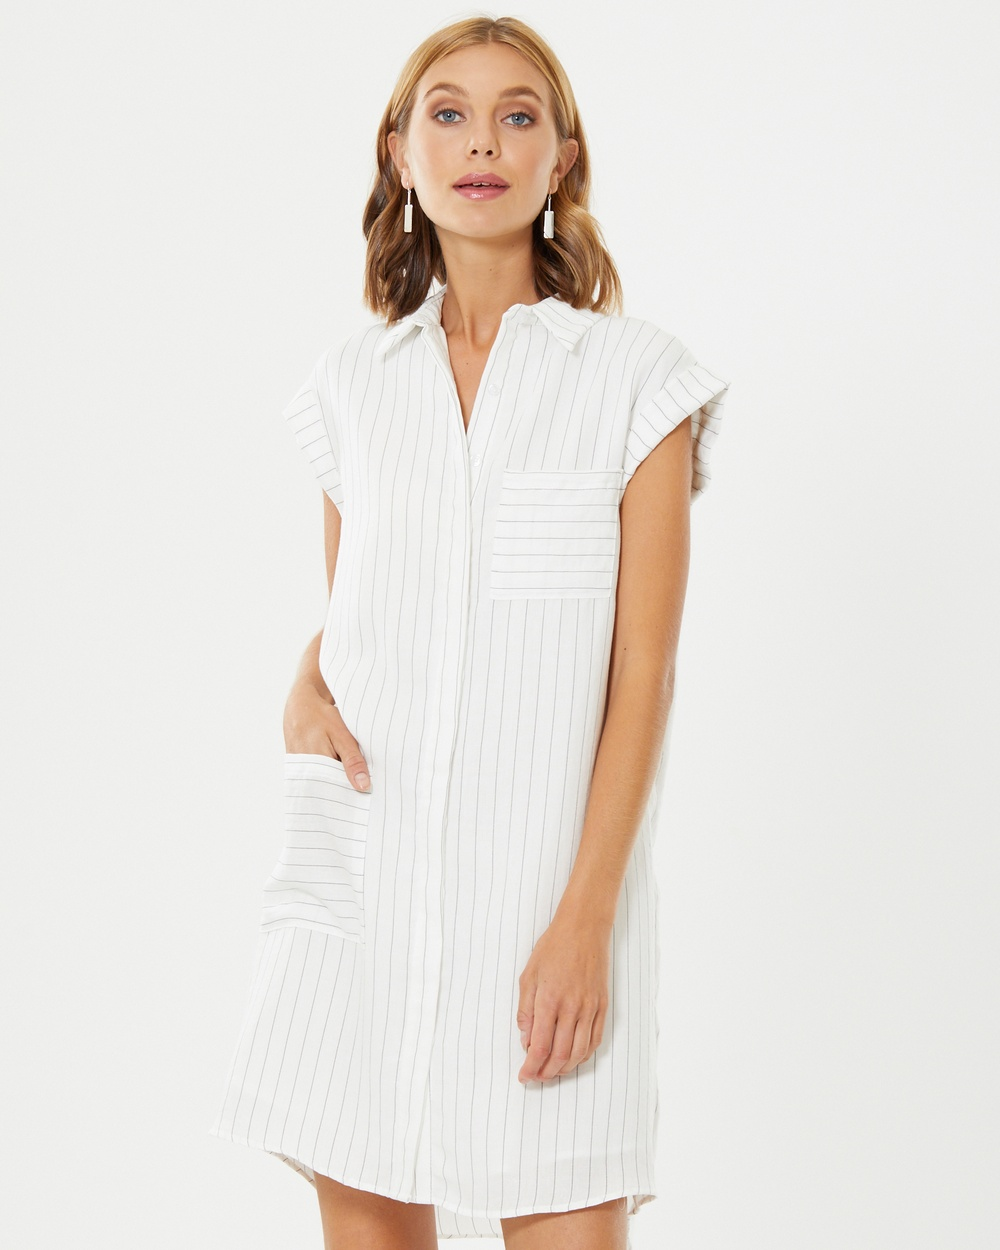 Calli Willa Pleat Back Dress Dresses White W- Black Stripe Willa Pleat Back Dress